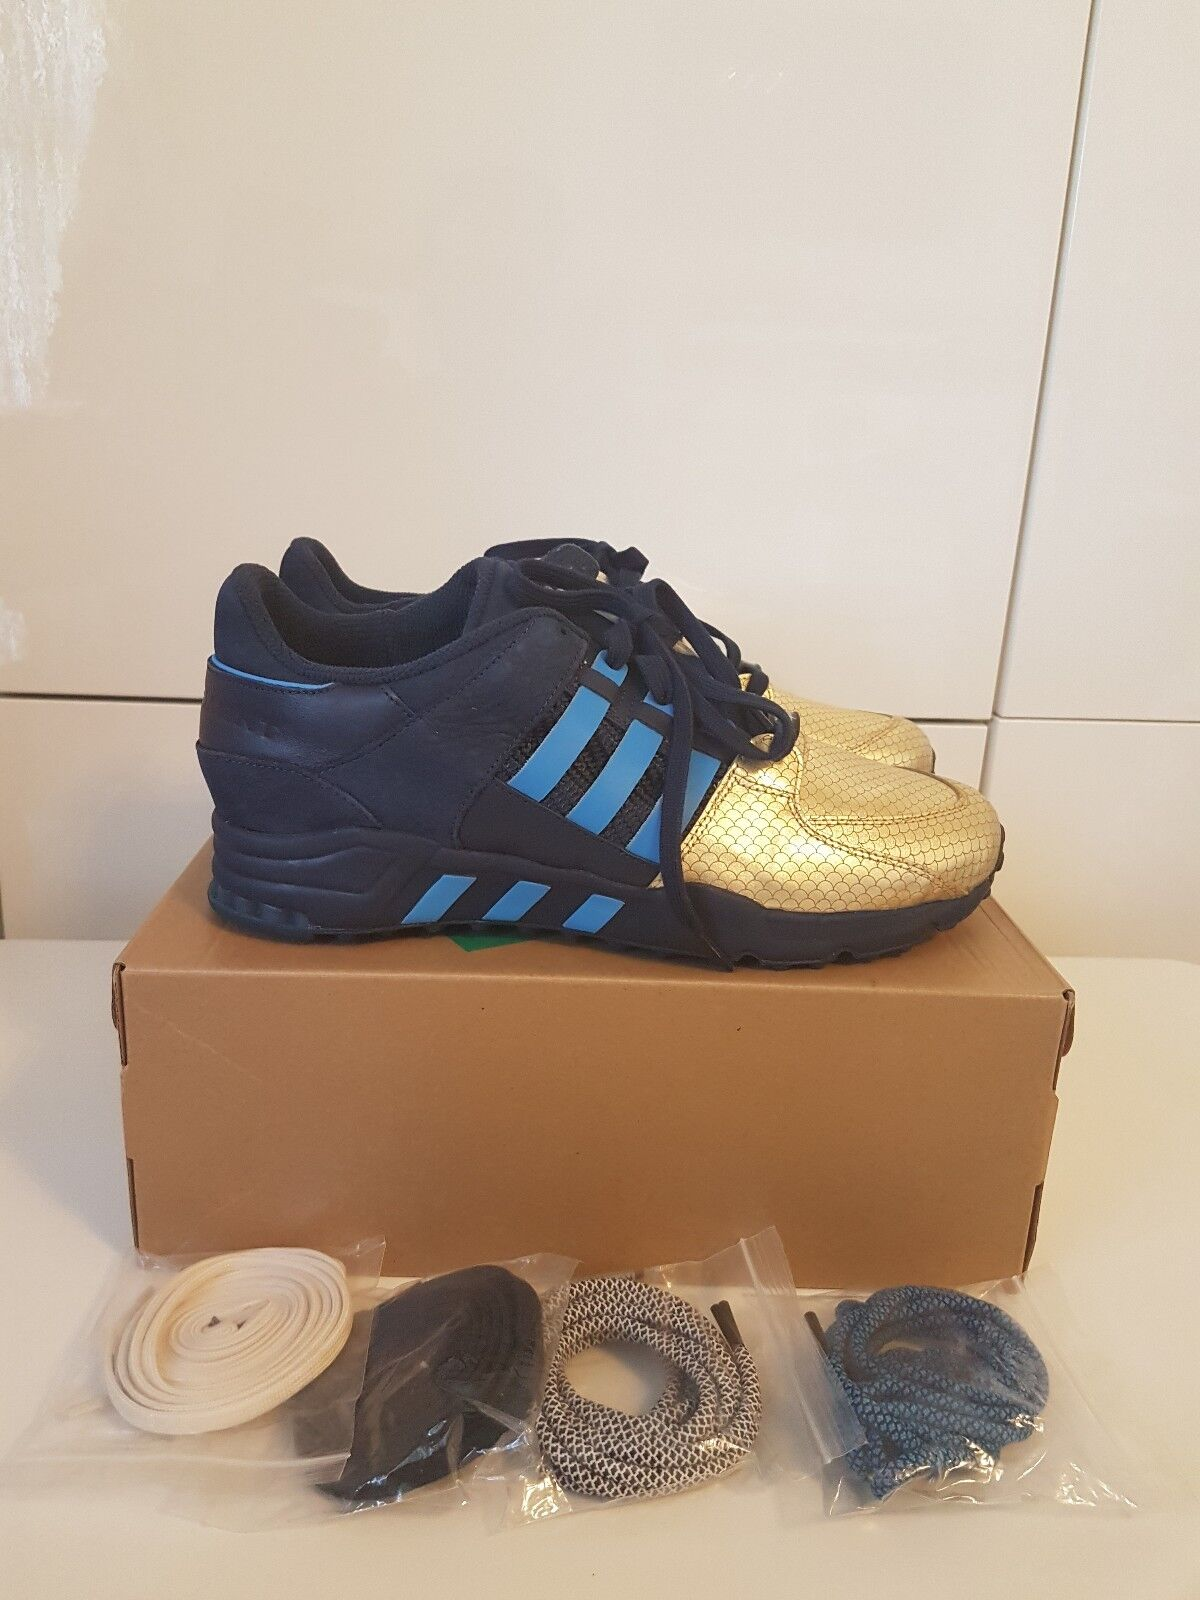 ADIDAS CONSORTIUM EQT SUPPORT 93 KITH X RONNIE FIEG NYC UK10   US 10.5